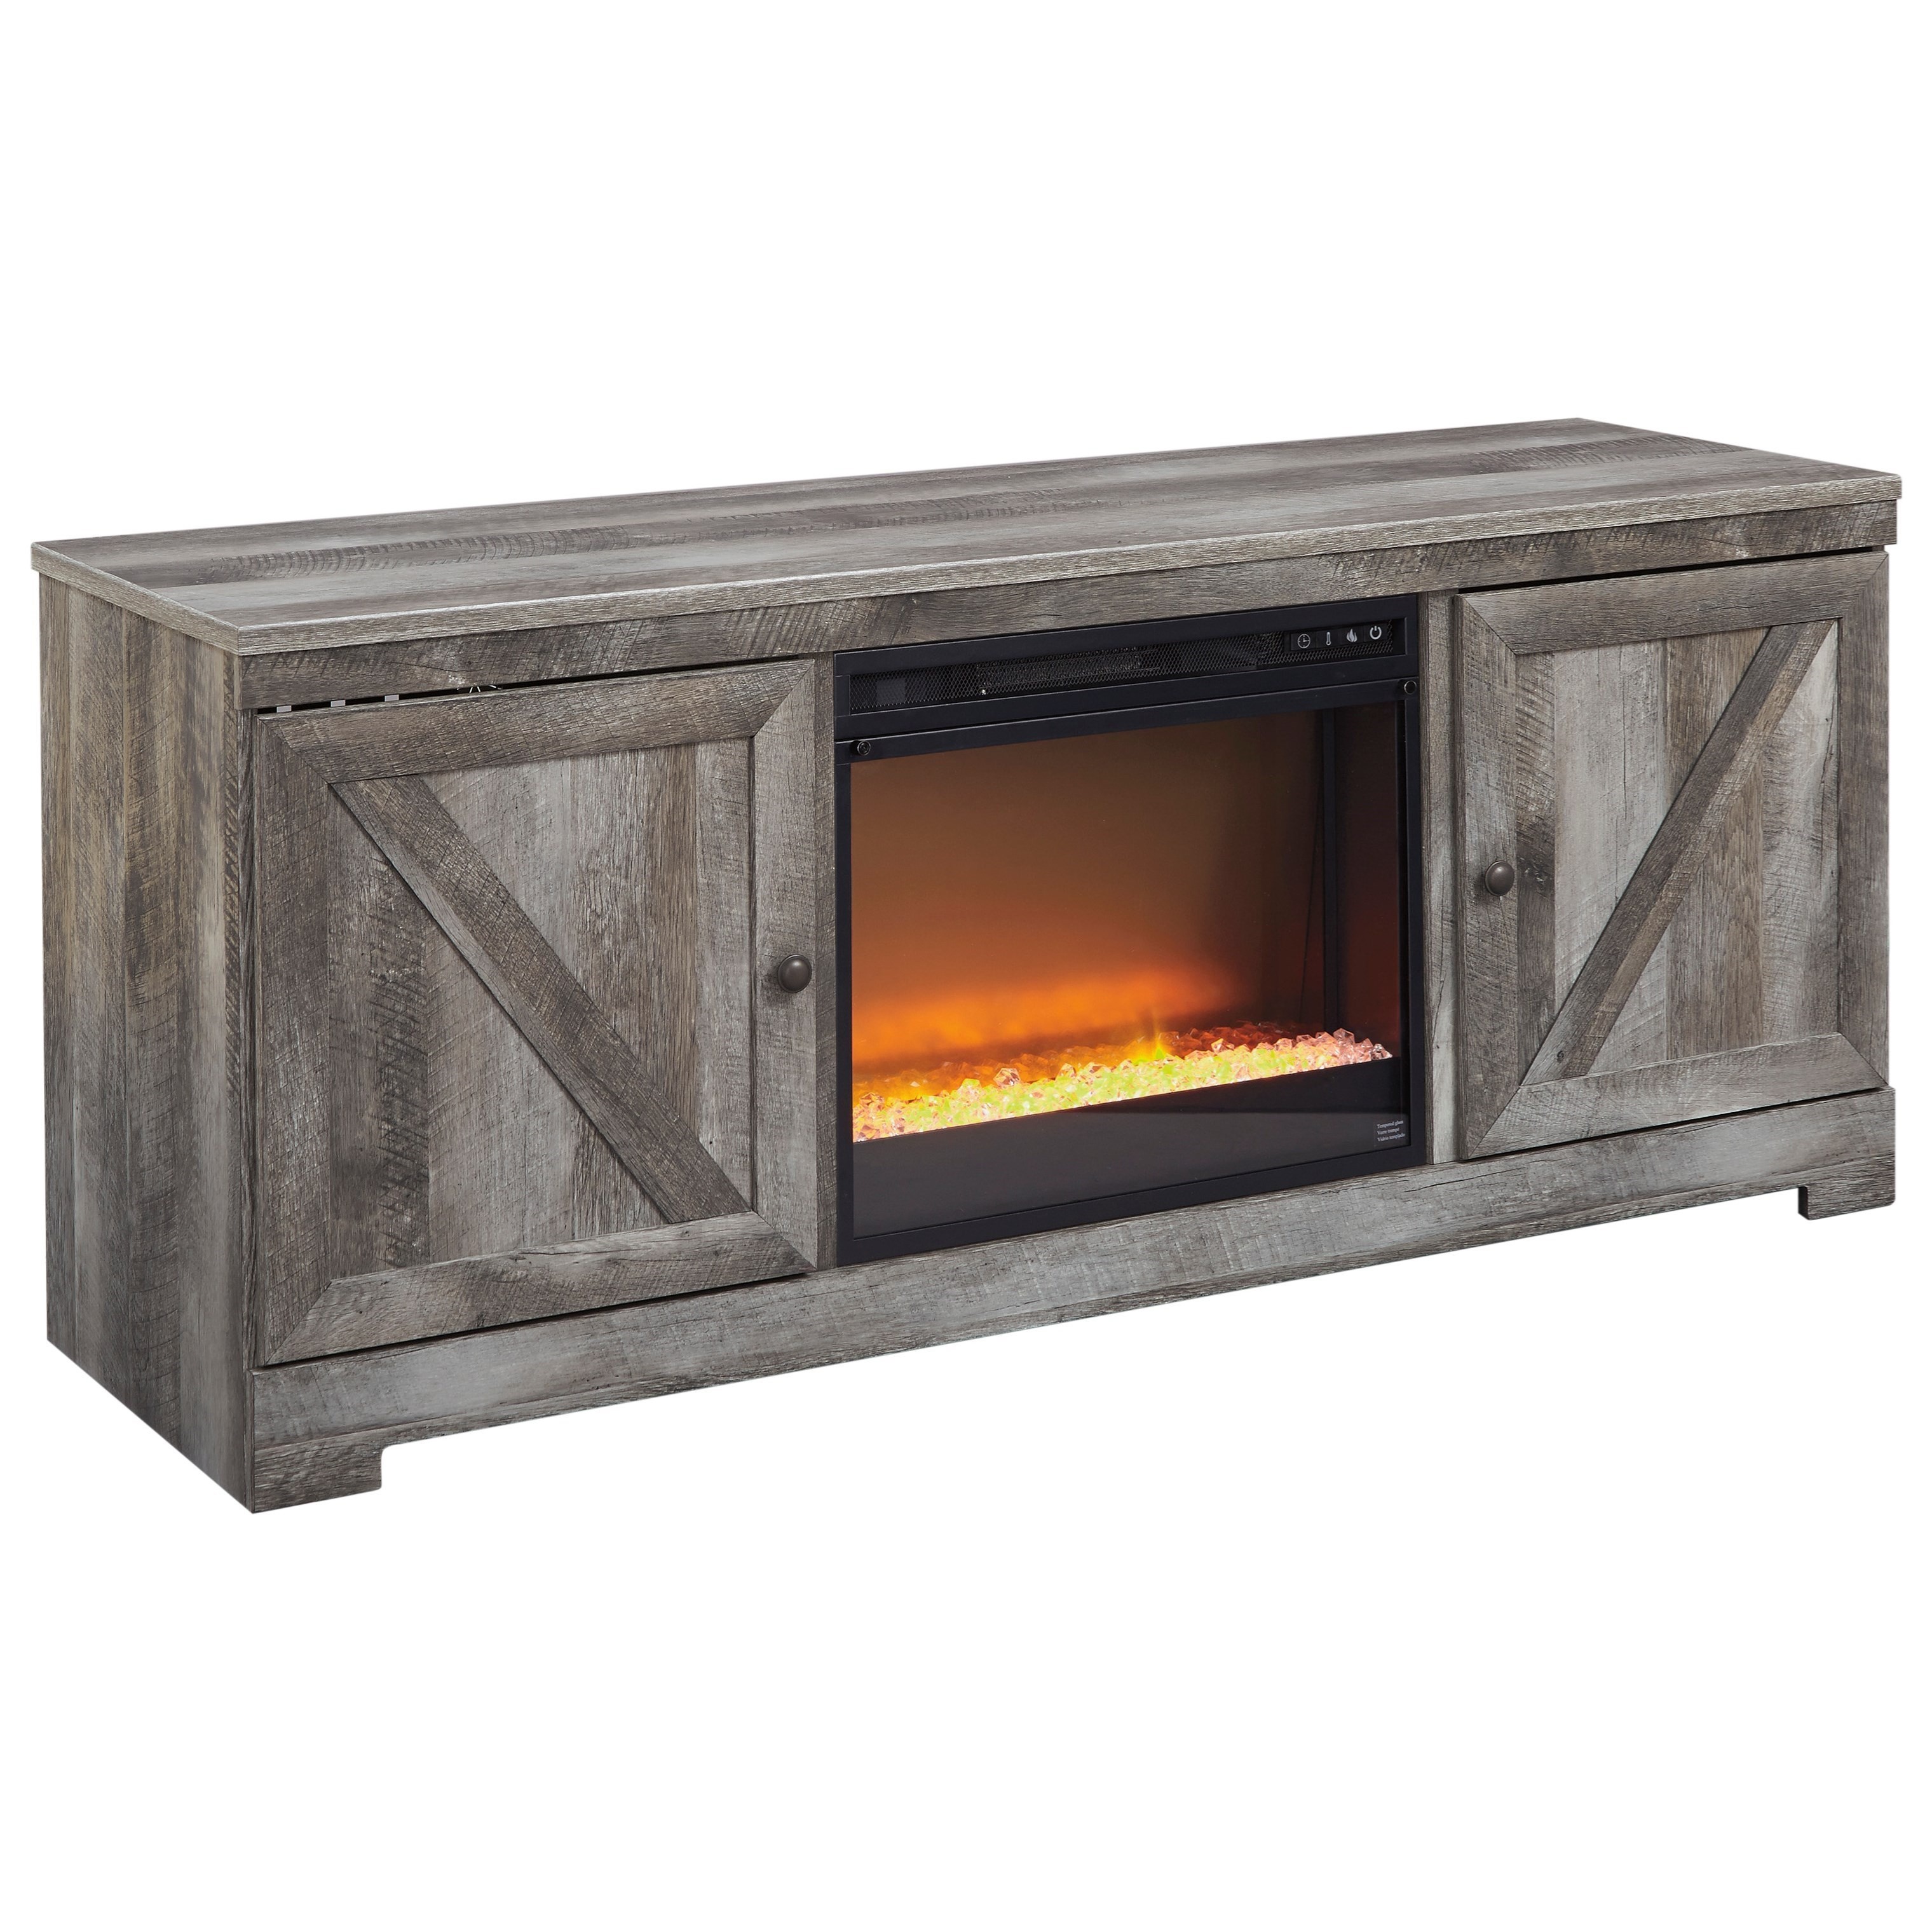 Wynnlow Large TV Stand with Fireplace at Sadler's Home Furnishings